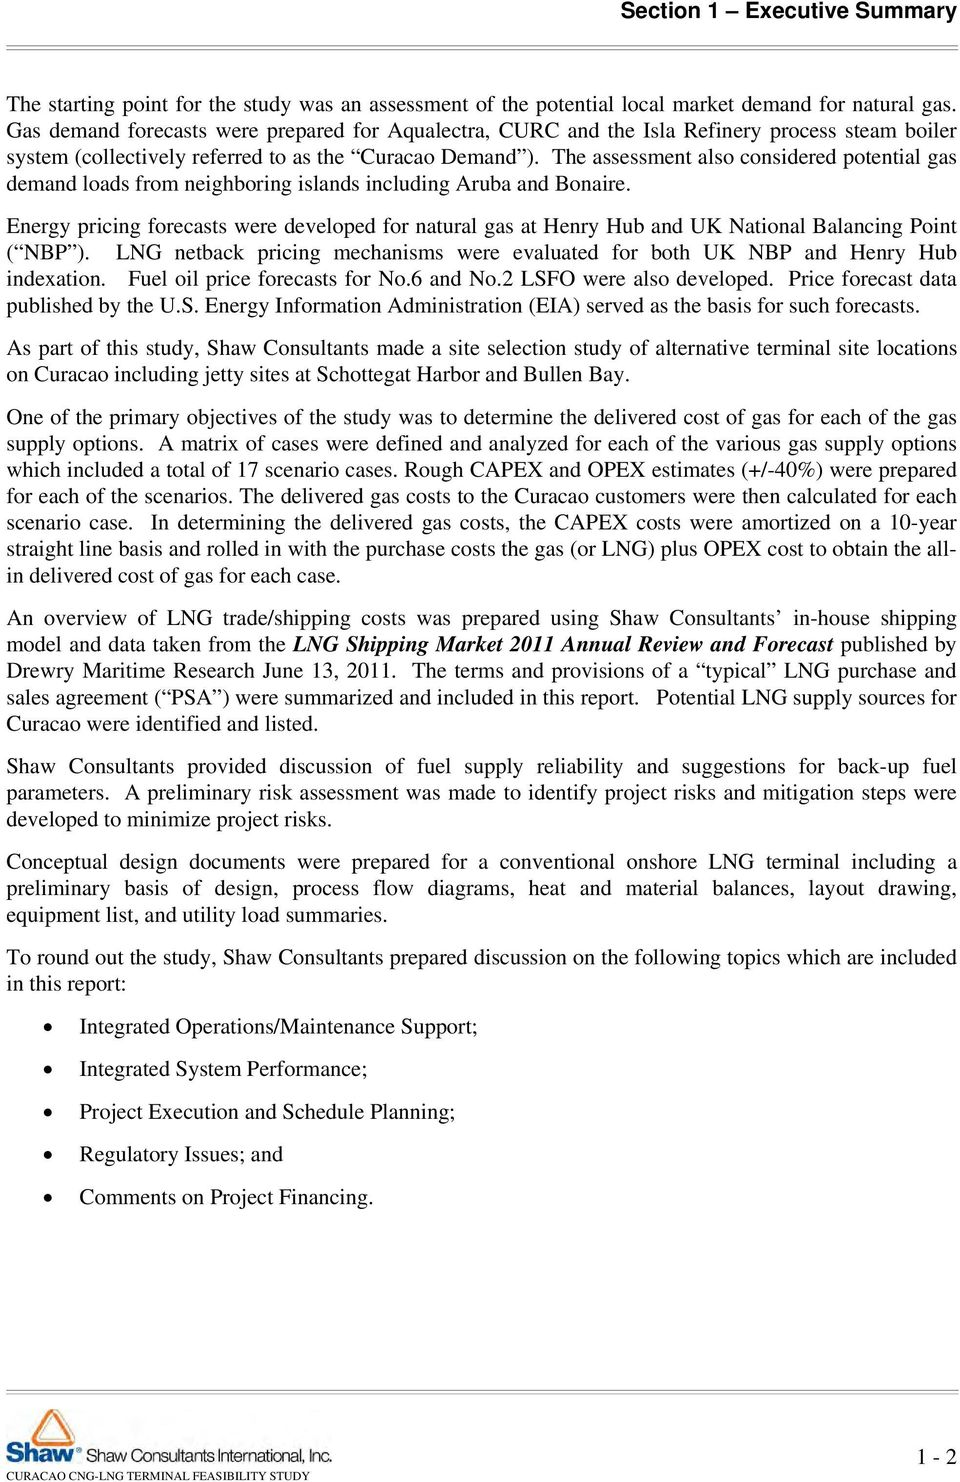 Curacao Cng Lng Terminal Feasibility Study Pdf Process Flow Diagram The Assessment Also Considered Potential Gas Demand Loads From Neighboring Islands Including Aruba And Bonaire